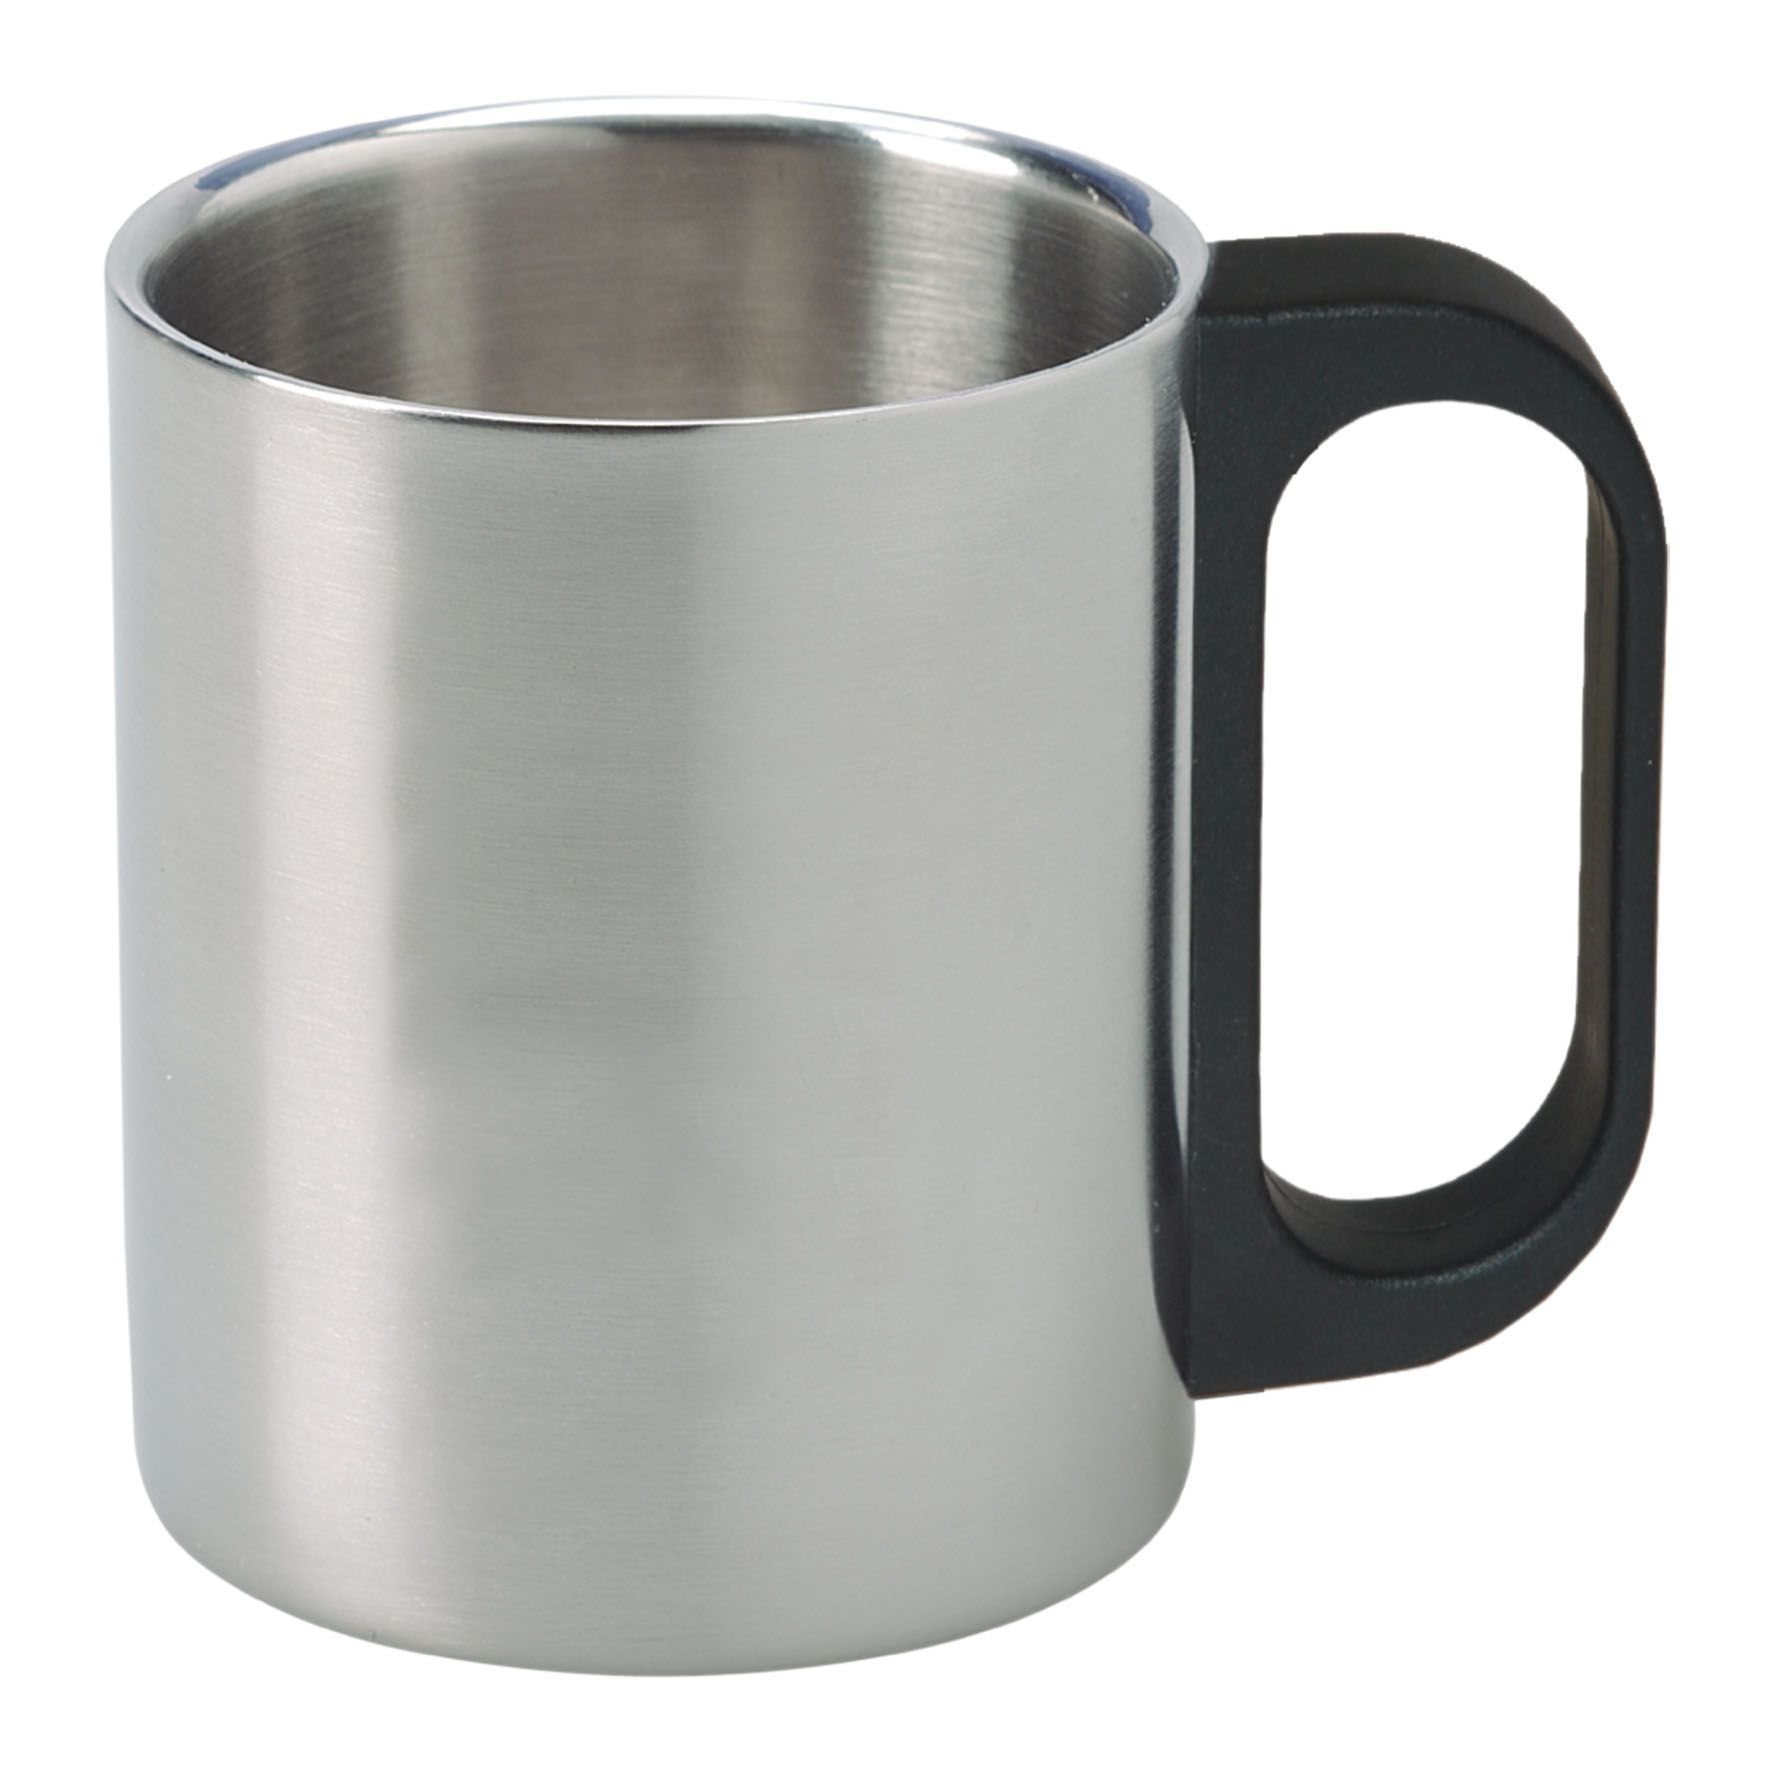 Cadeau publicitaire - Mug publicitaire isotherme inox 22cl Timbali